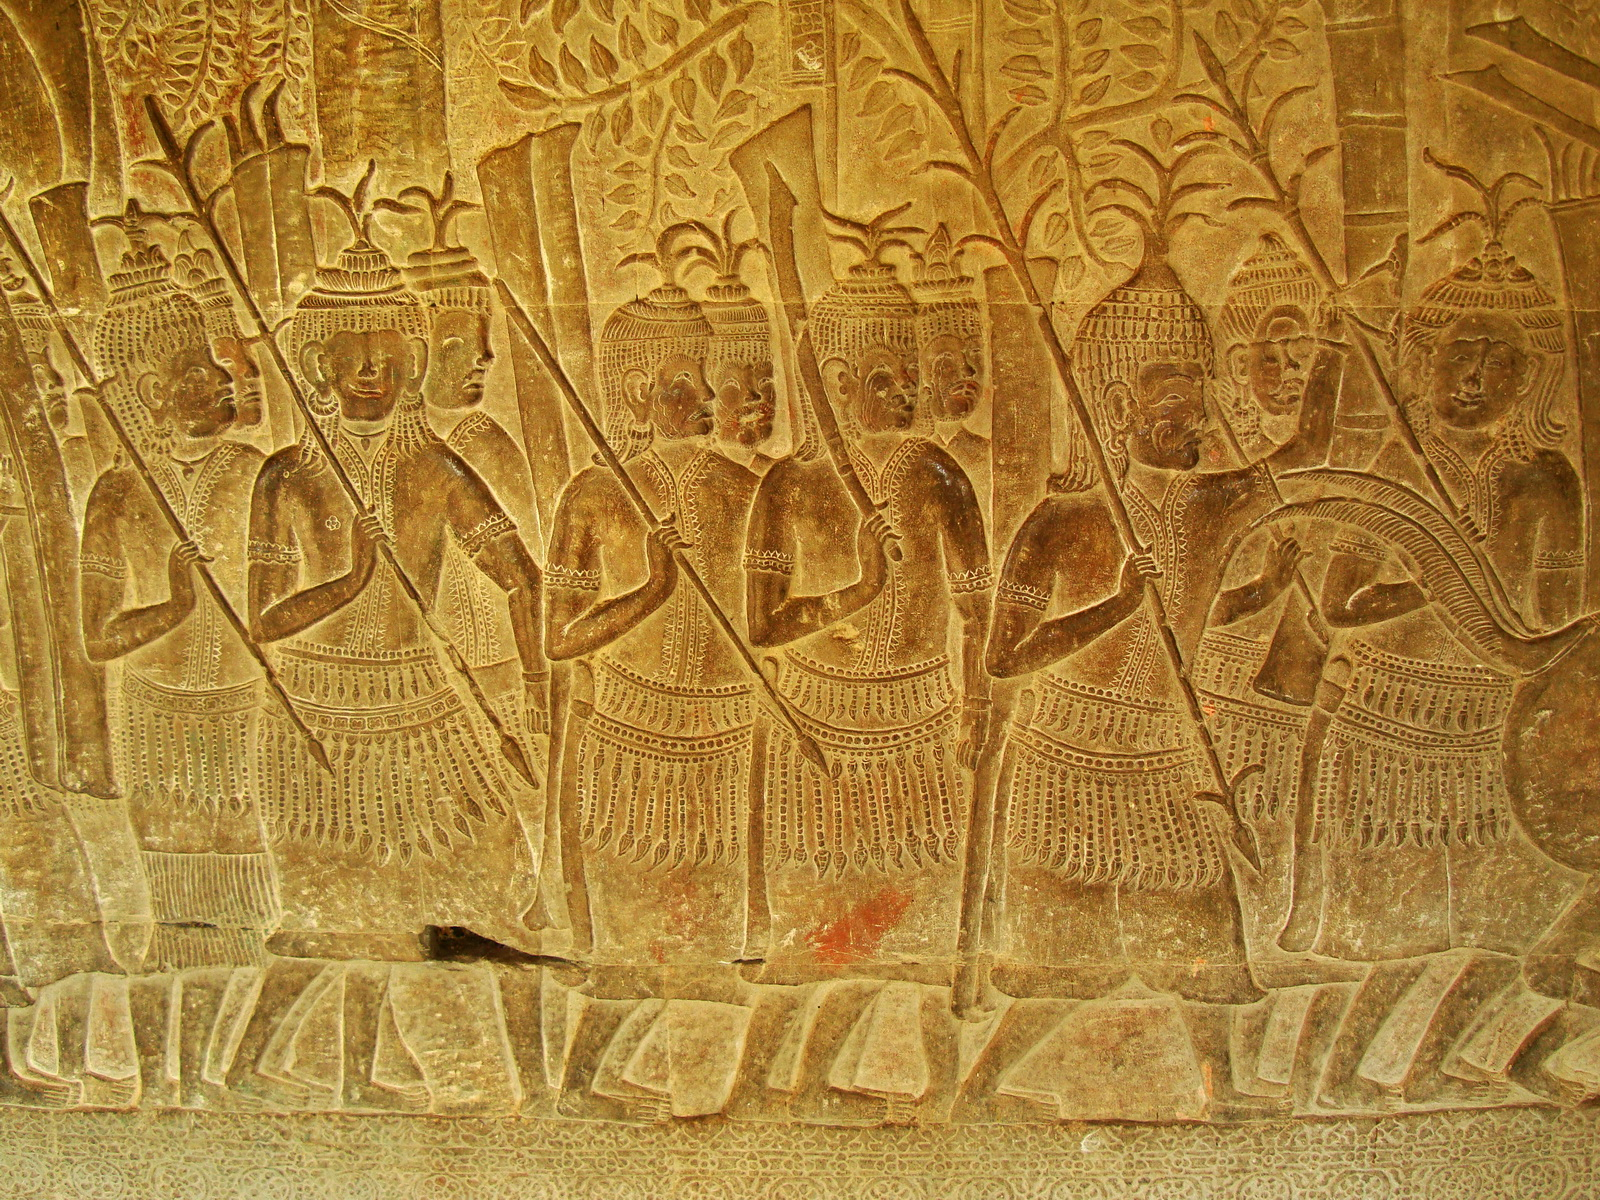 Angkor Wat Bas relief S Gallery W Wing Historic Procession 112